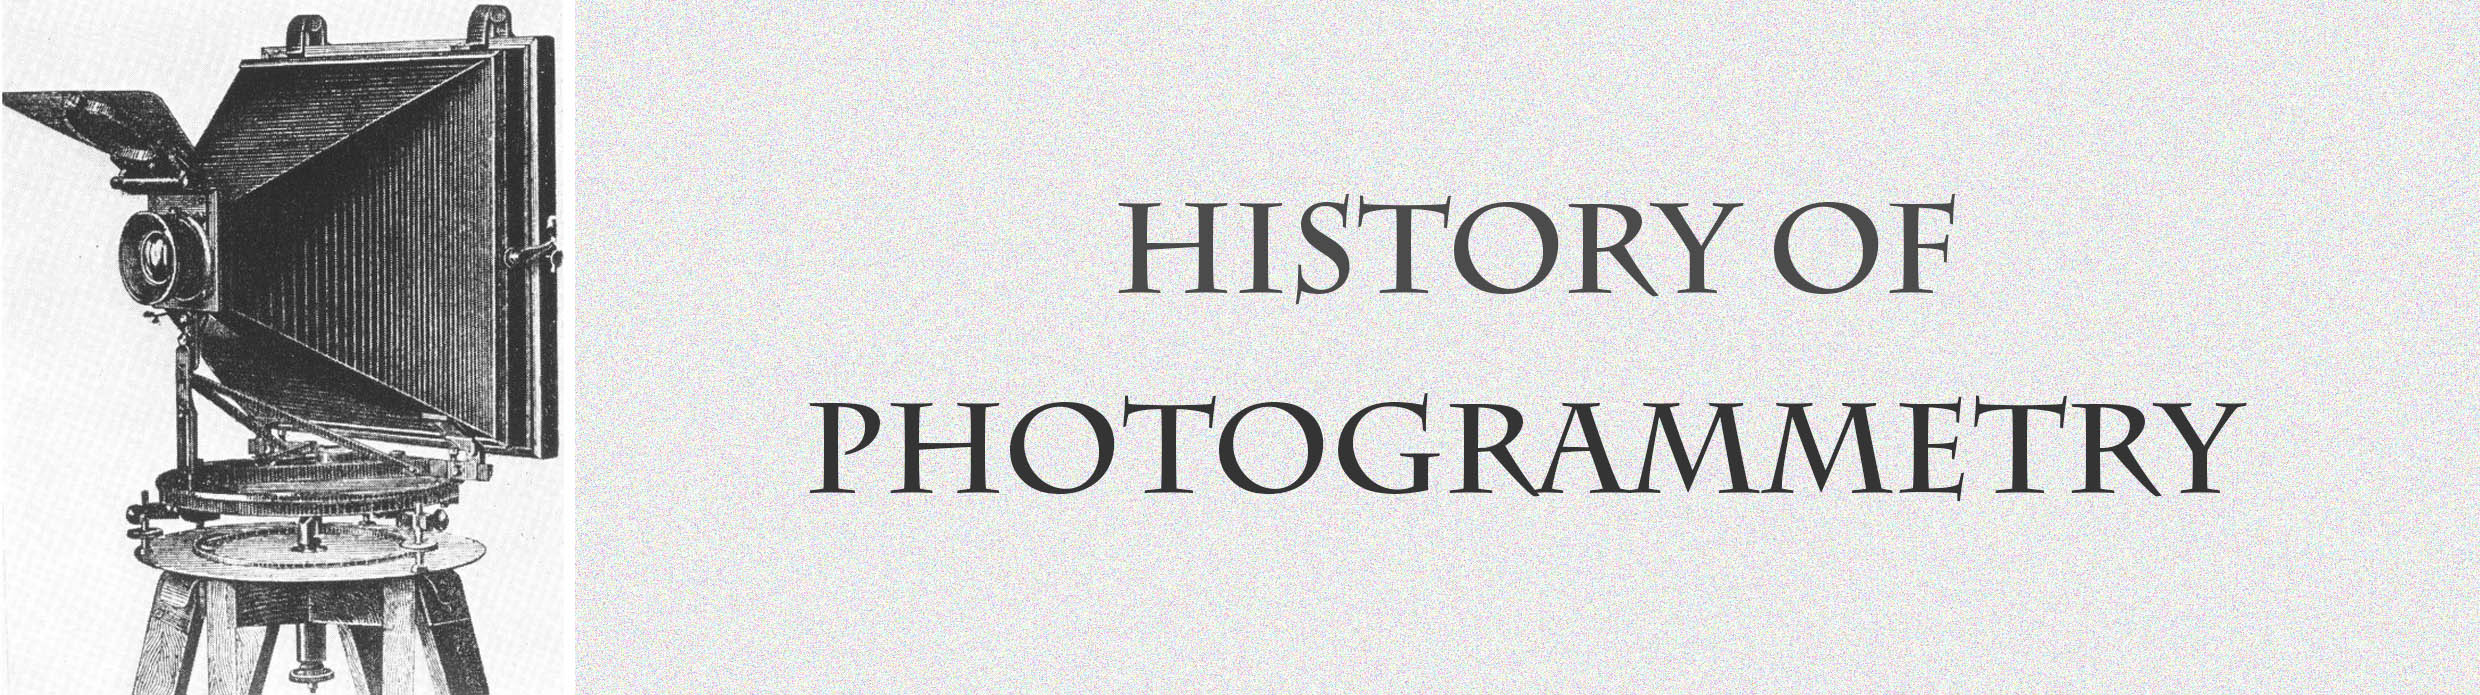 Image with vintage camera and text history of photogrammetry